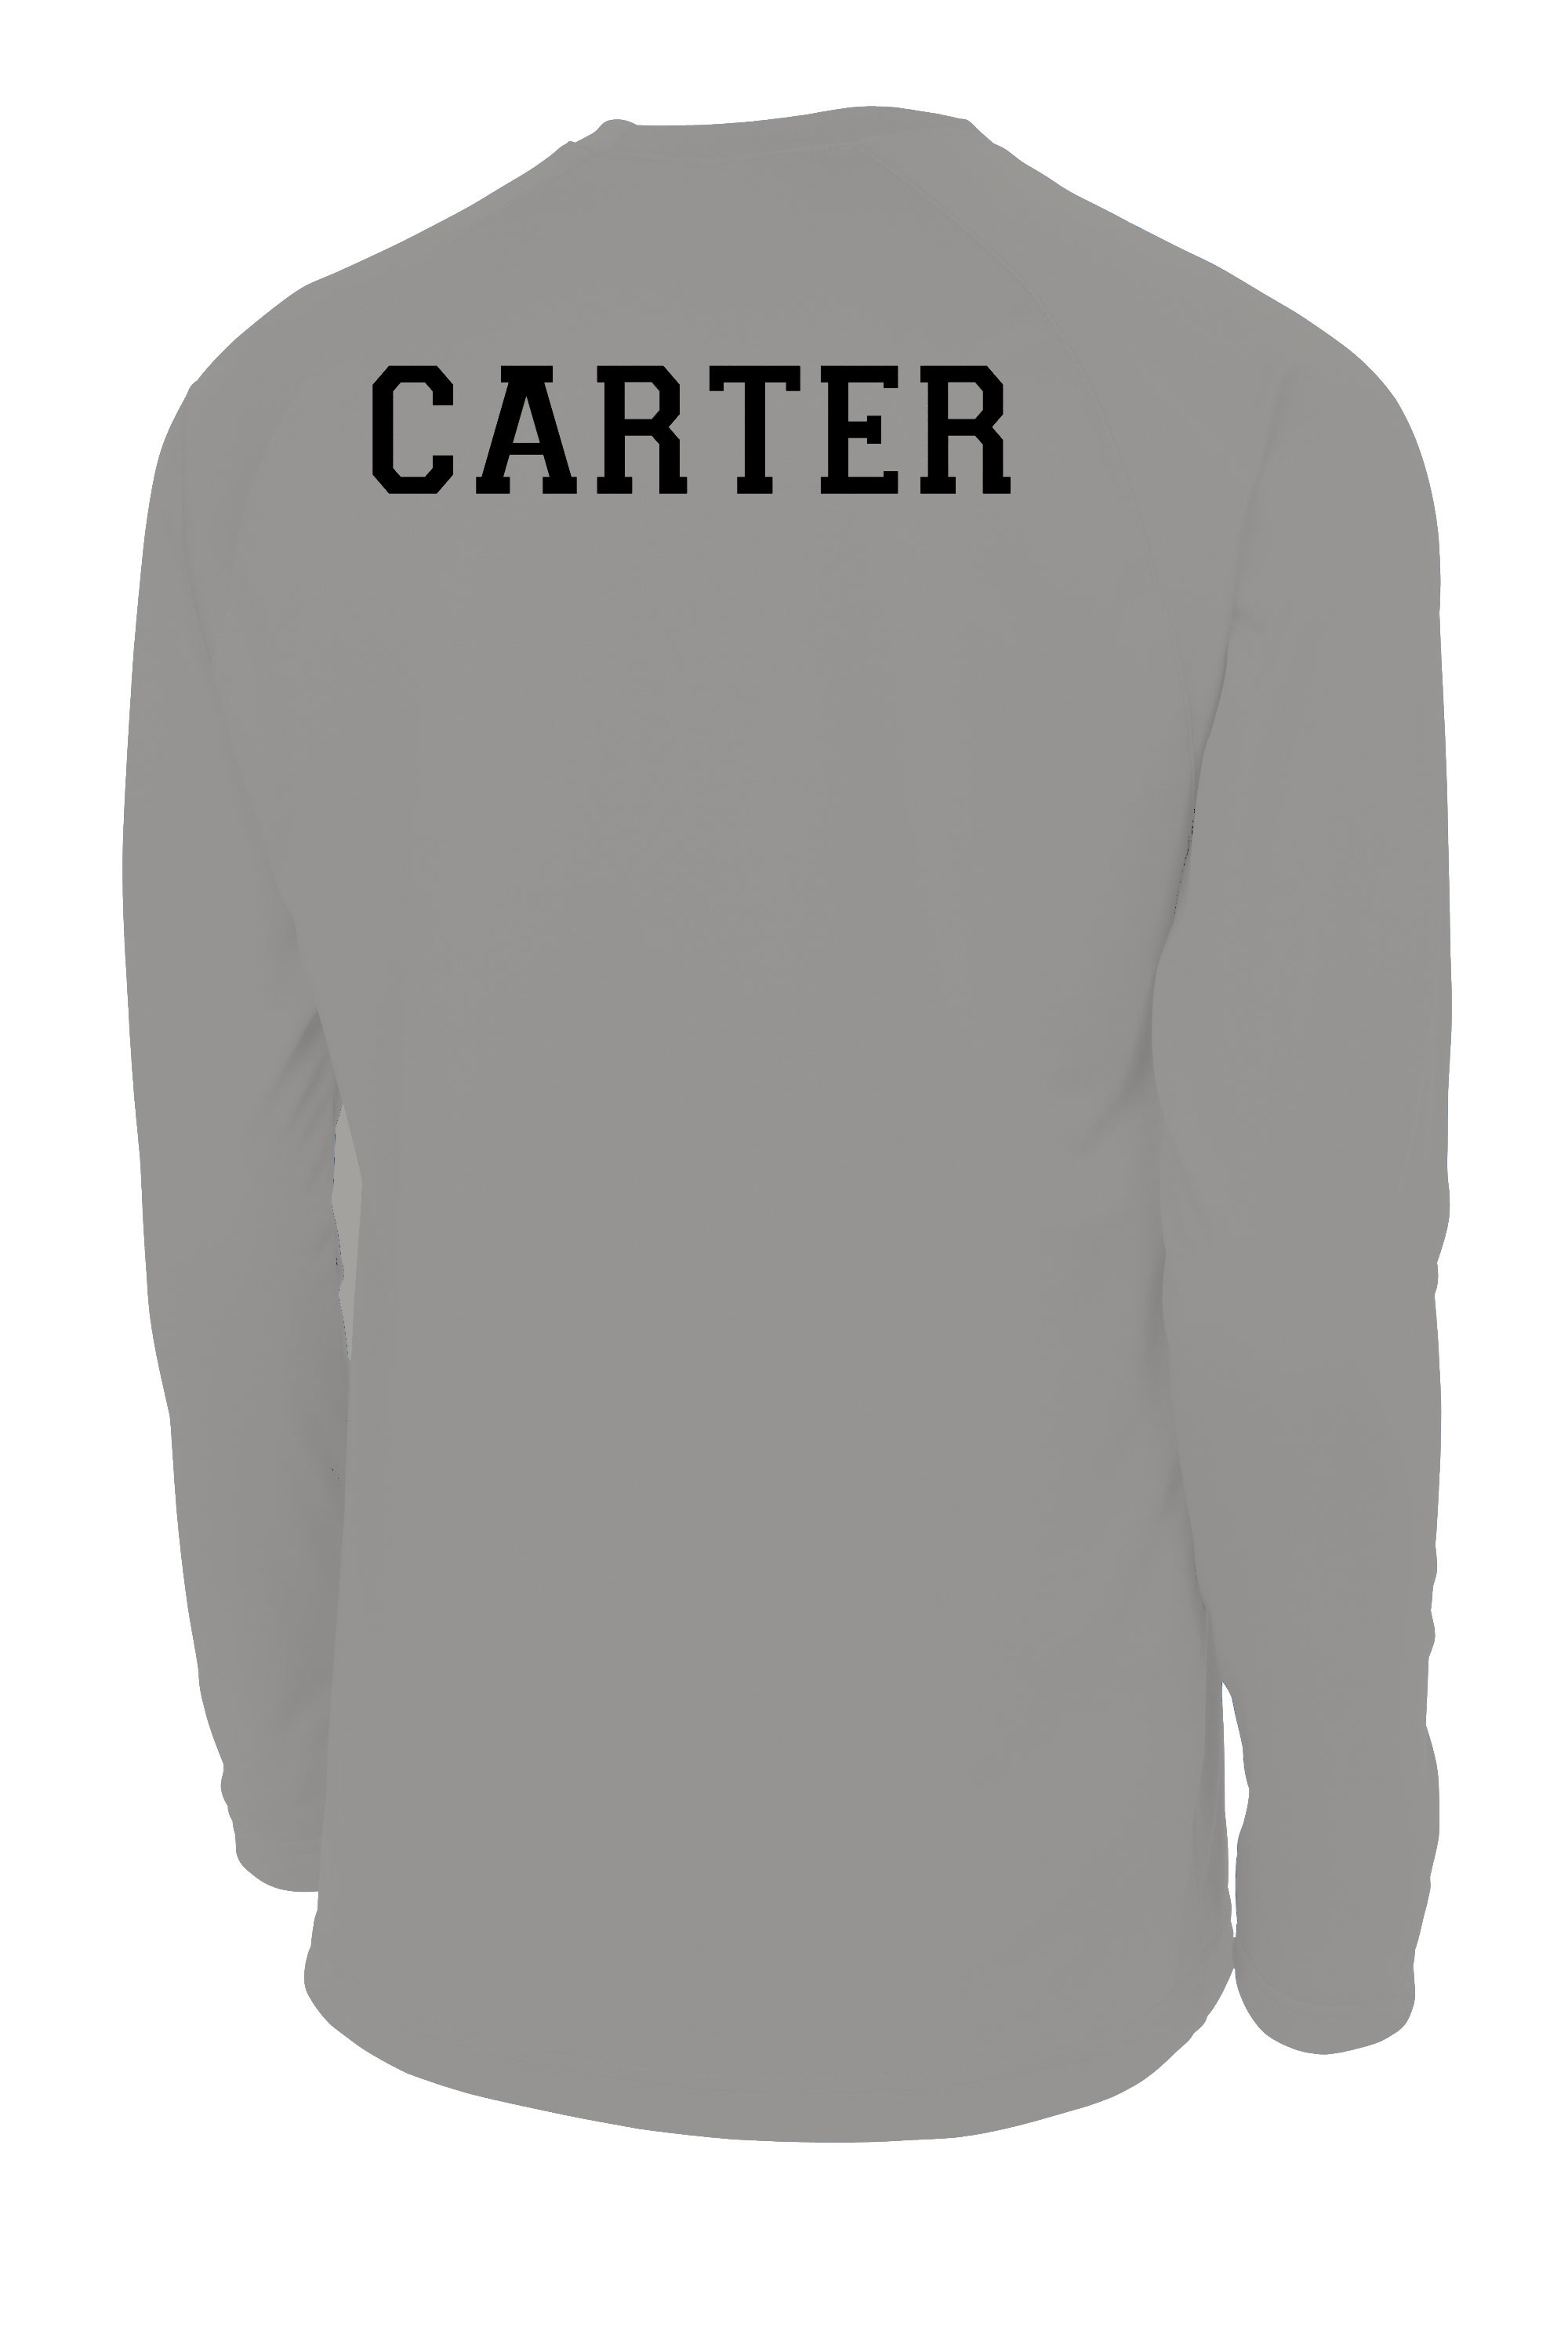 Long sleeve shooting shirt in silver with name on back, by Code Four Athletics